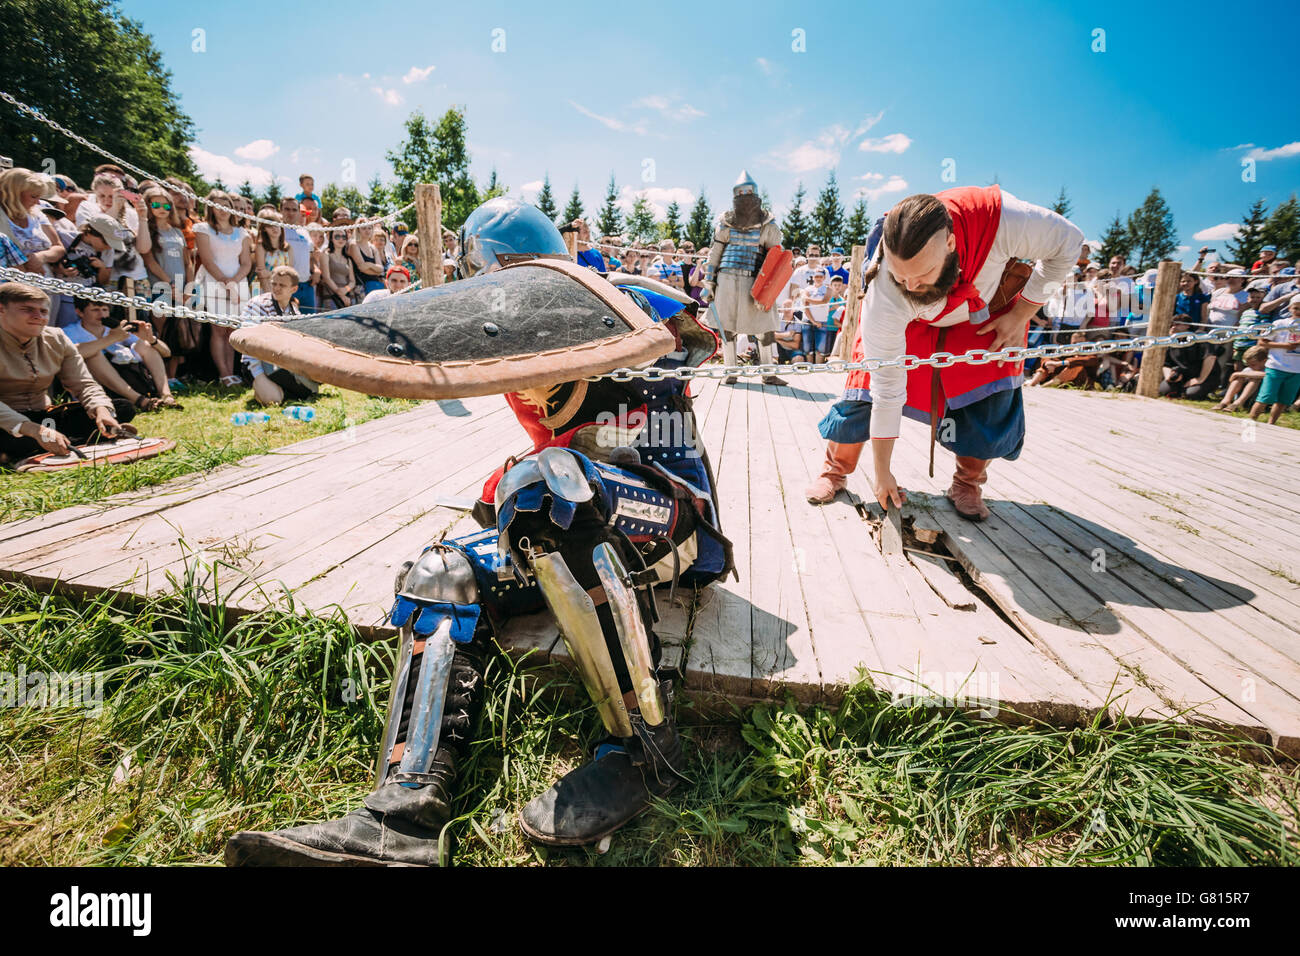 MINSK, BELARUS - JULY 19, 2014: Historical restoration of knightly fights on festival of medieval culture - Stock Image